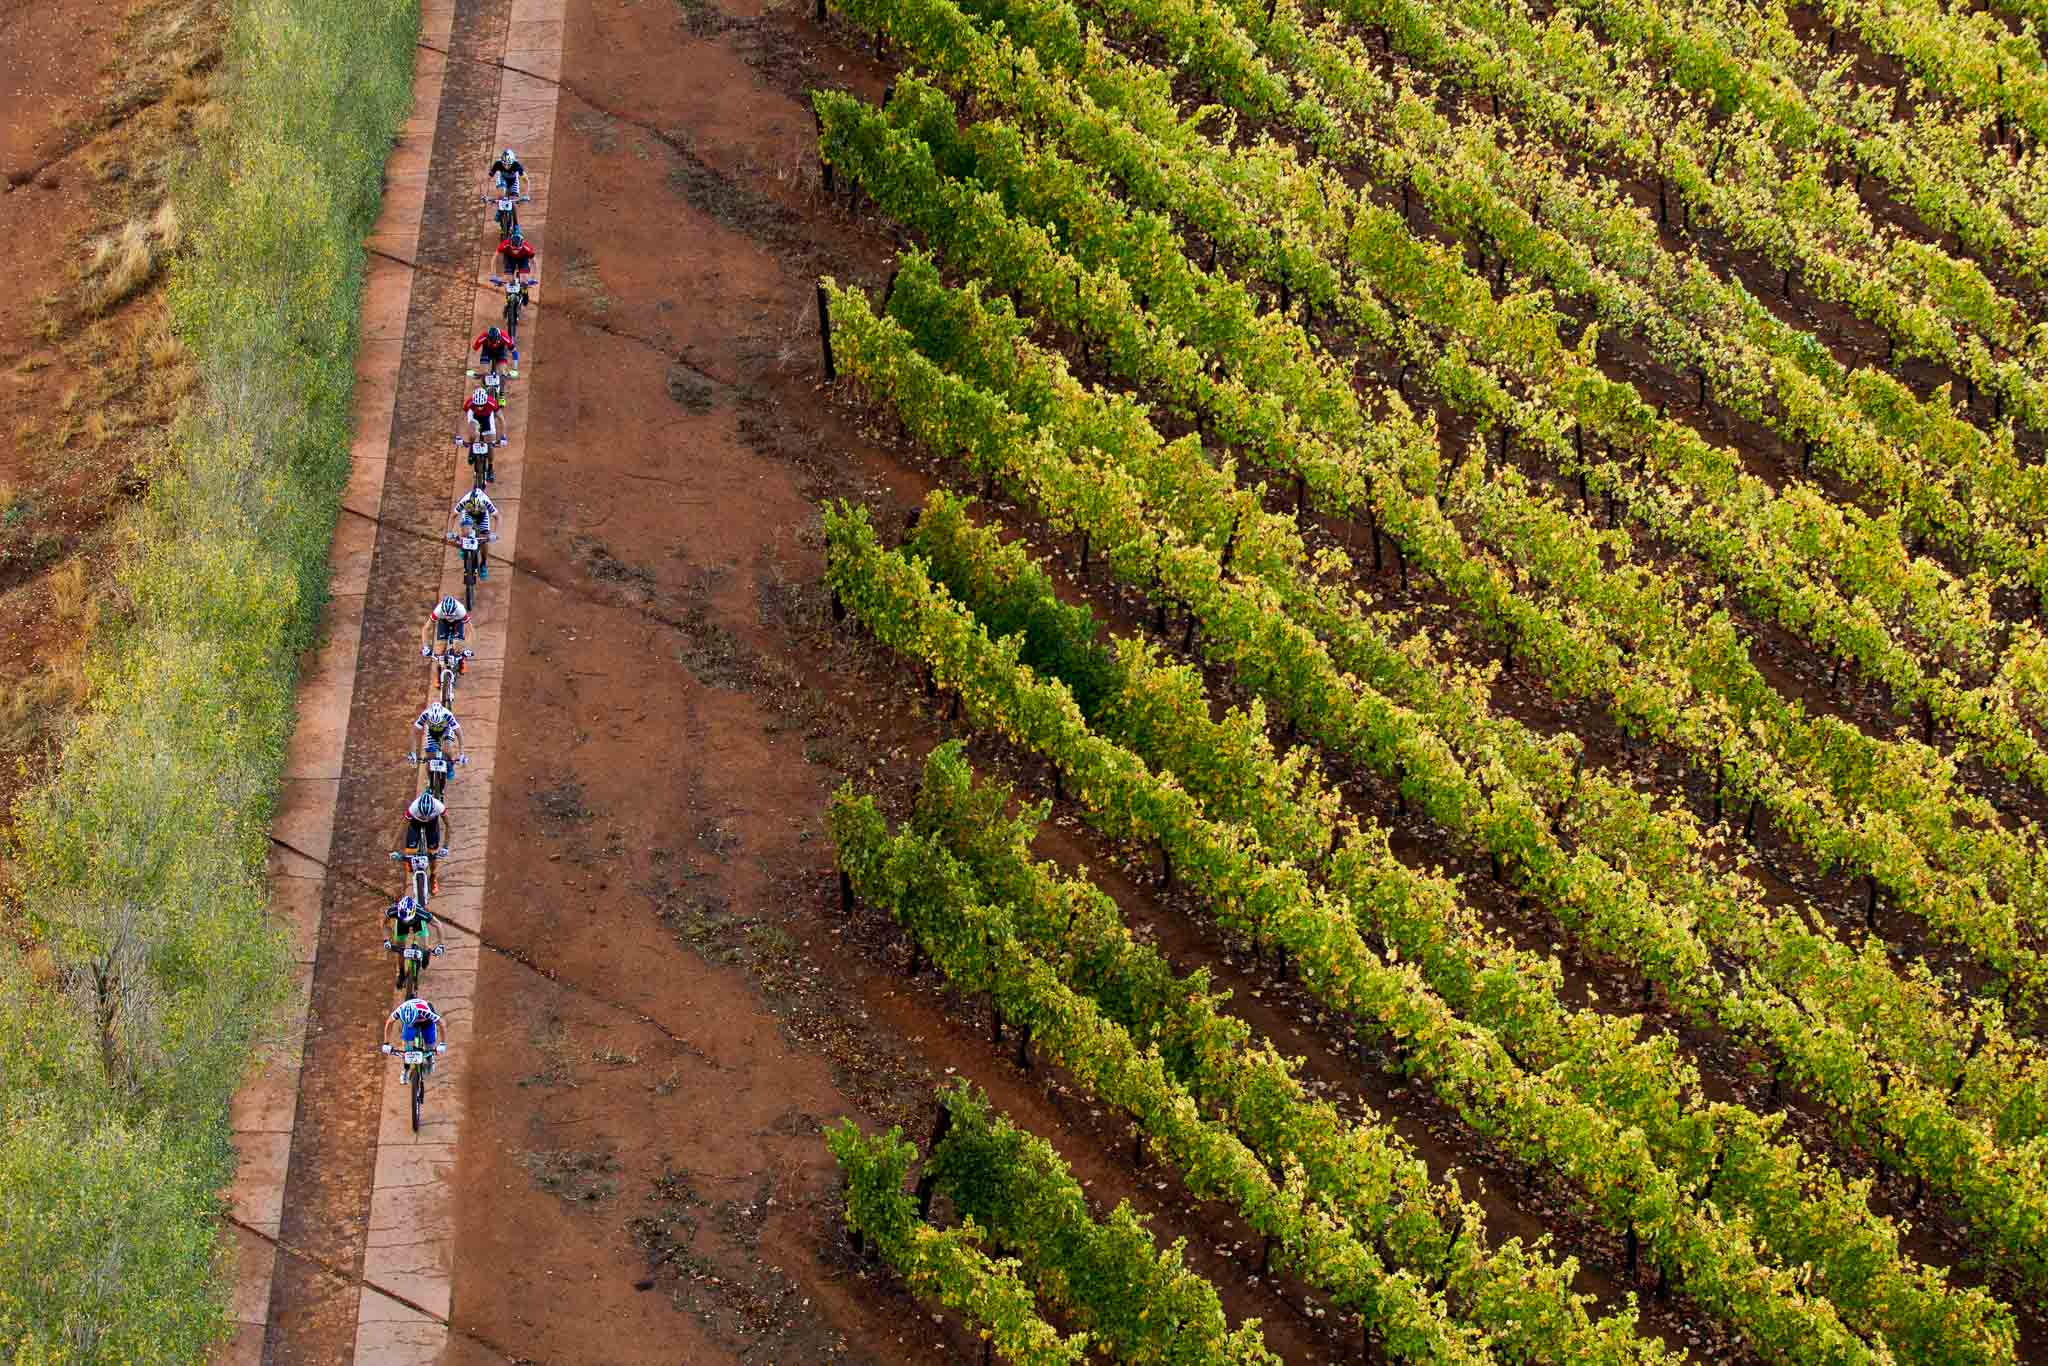 The lead bunch climb out of Thelema Wine Estate during stage 6 of the 2016 Absa Cape Epic Mountain Bike stage race from Boschendal in Stellenbosch, South Africa on the 19th March 2015 Photo by Gary Perkin/Cape Epic/SPORTZPICS PLEASE ENSURE THE APPROPRIATE CREDIT IS GIVEN TO THE PHOTOGRAPHER AND SPORTZPICS ALONG WITH THE ABSA CAPE EPIC ace2016